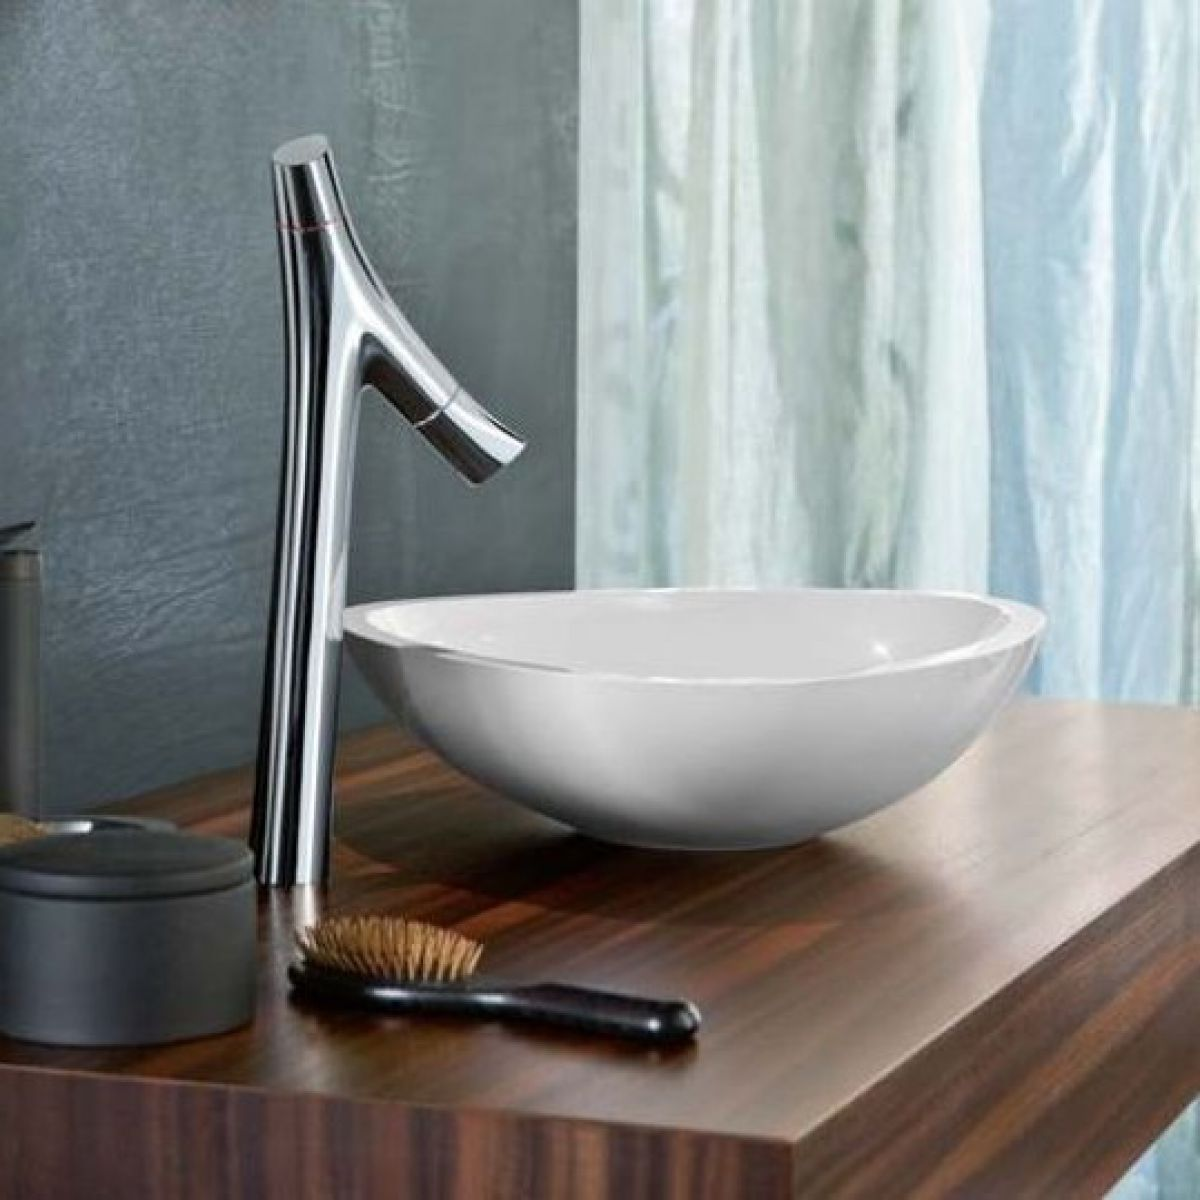 Attractive Axor Citterio Kitchen Faucet Inspiration - Faucet ...